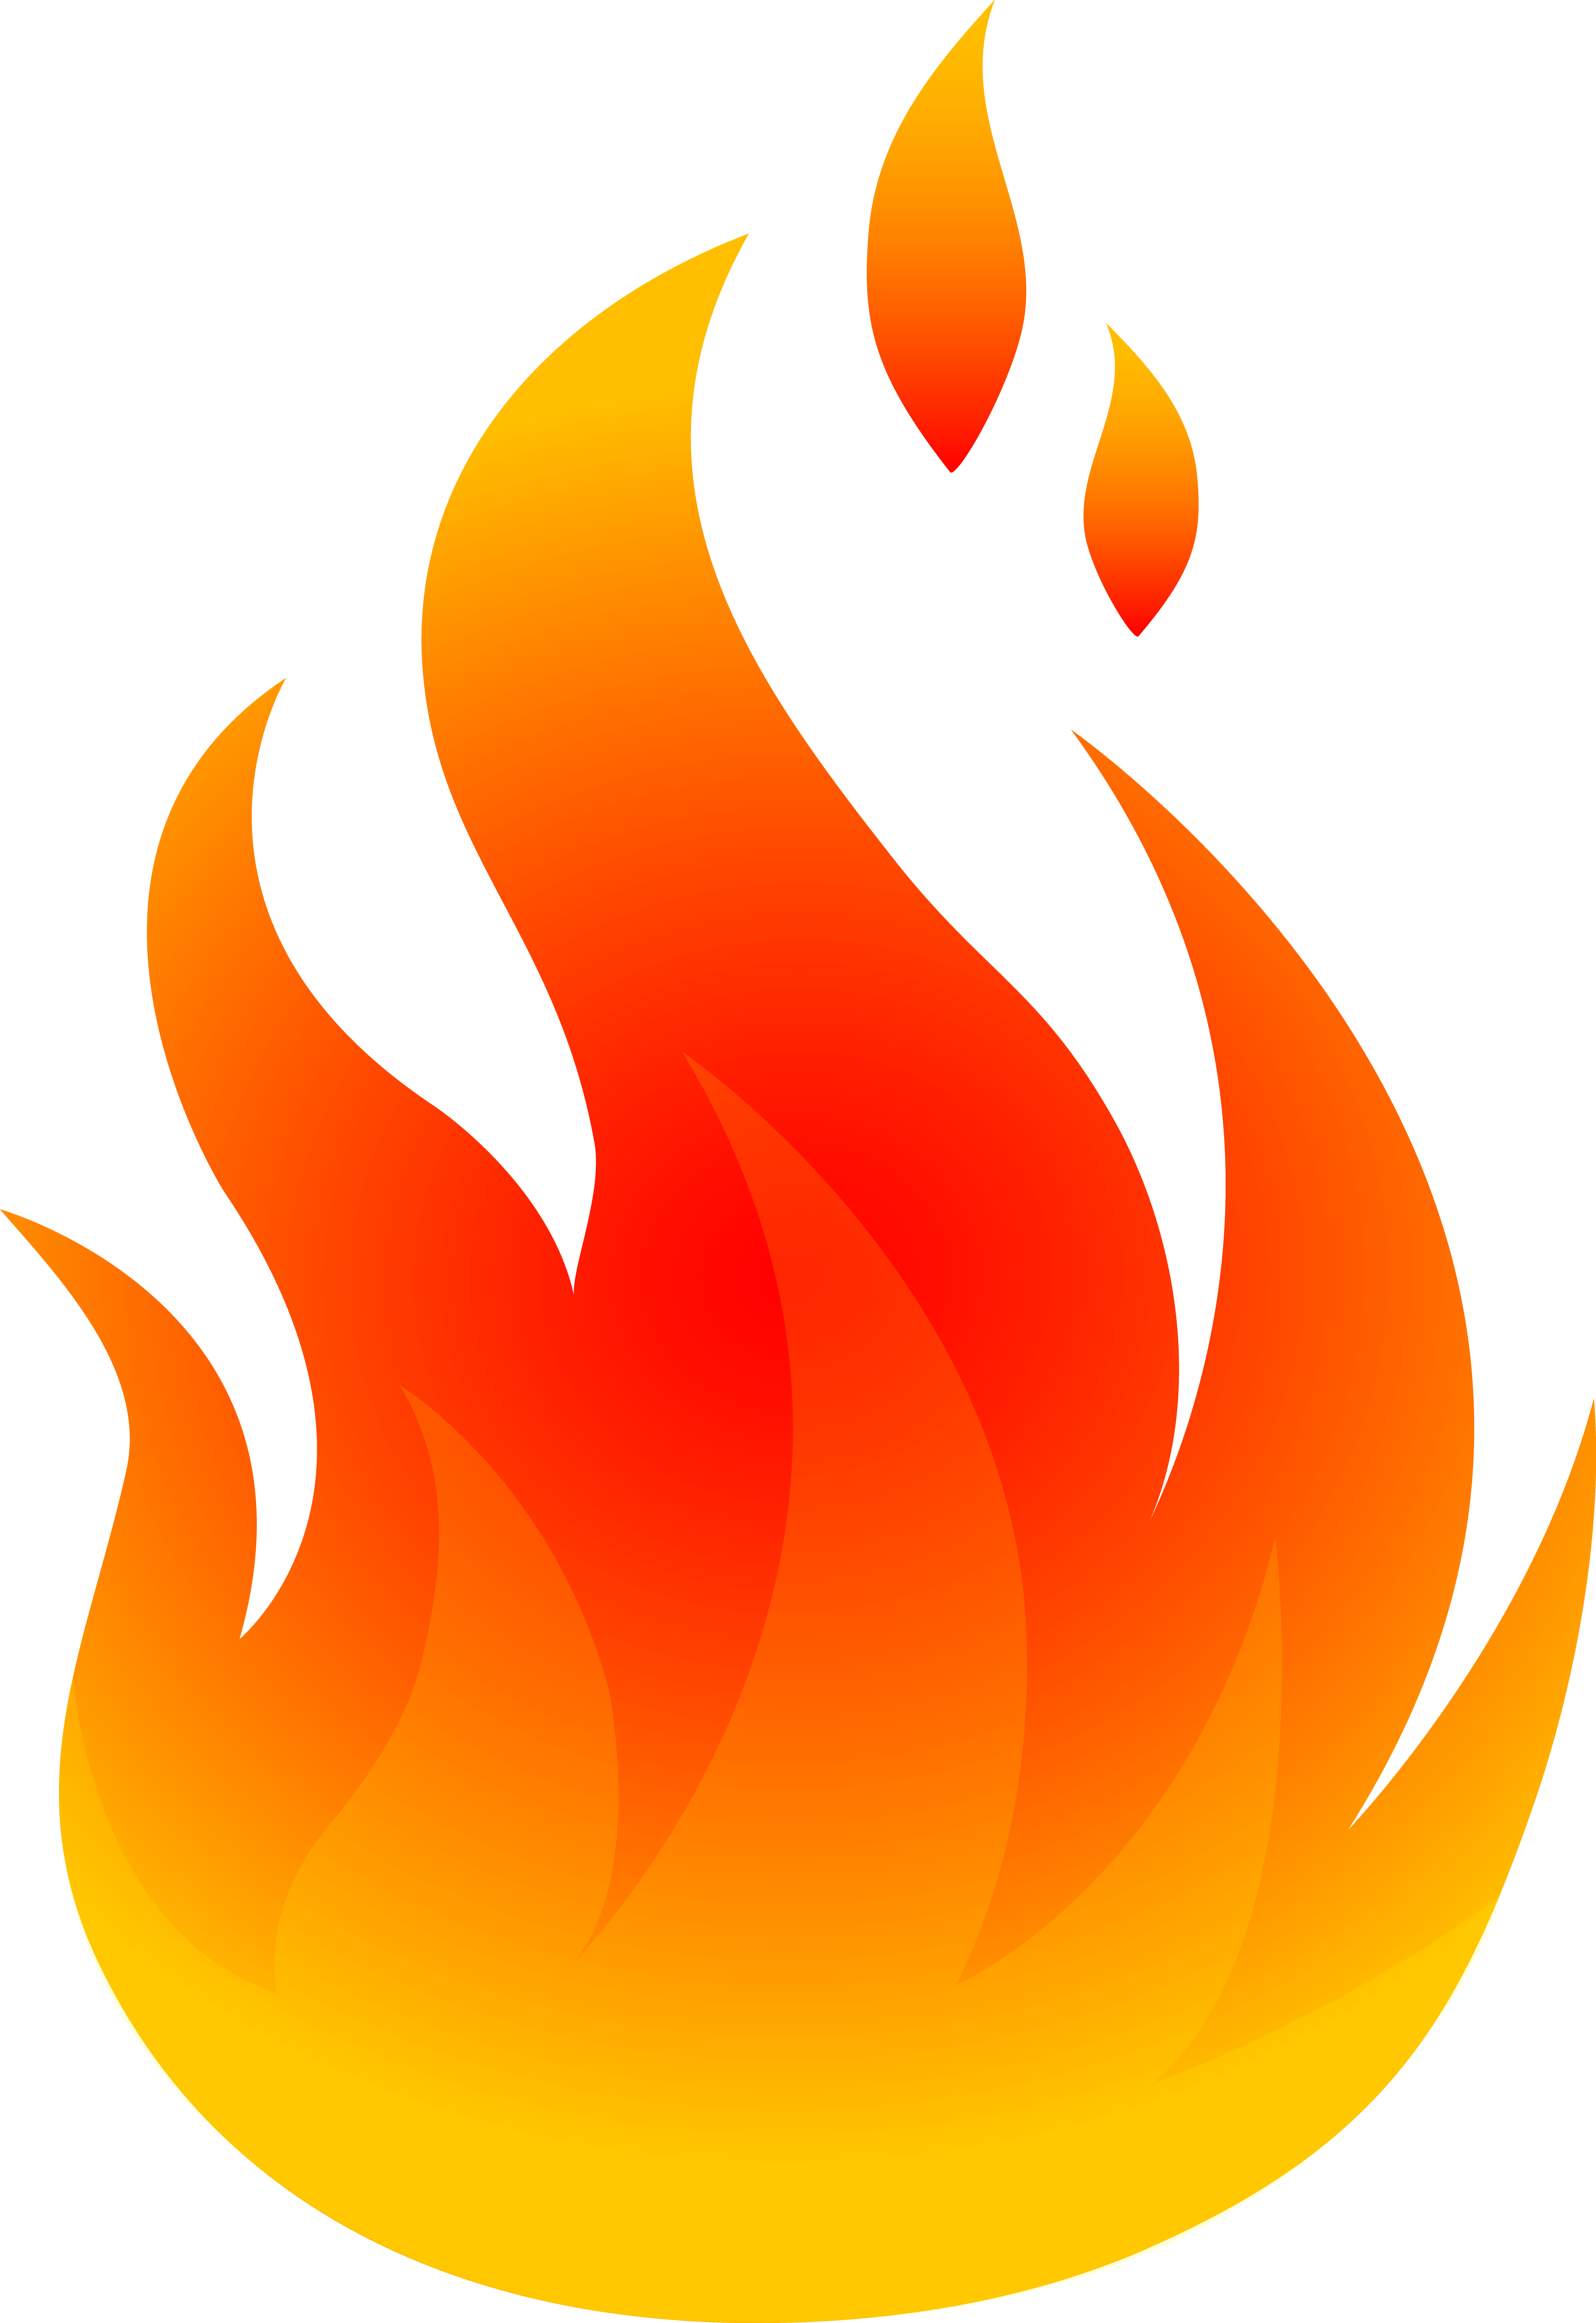 Fire flame cartoon free clipart images 2